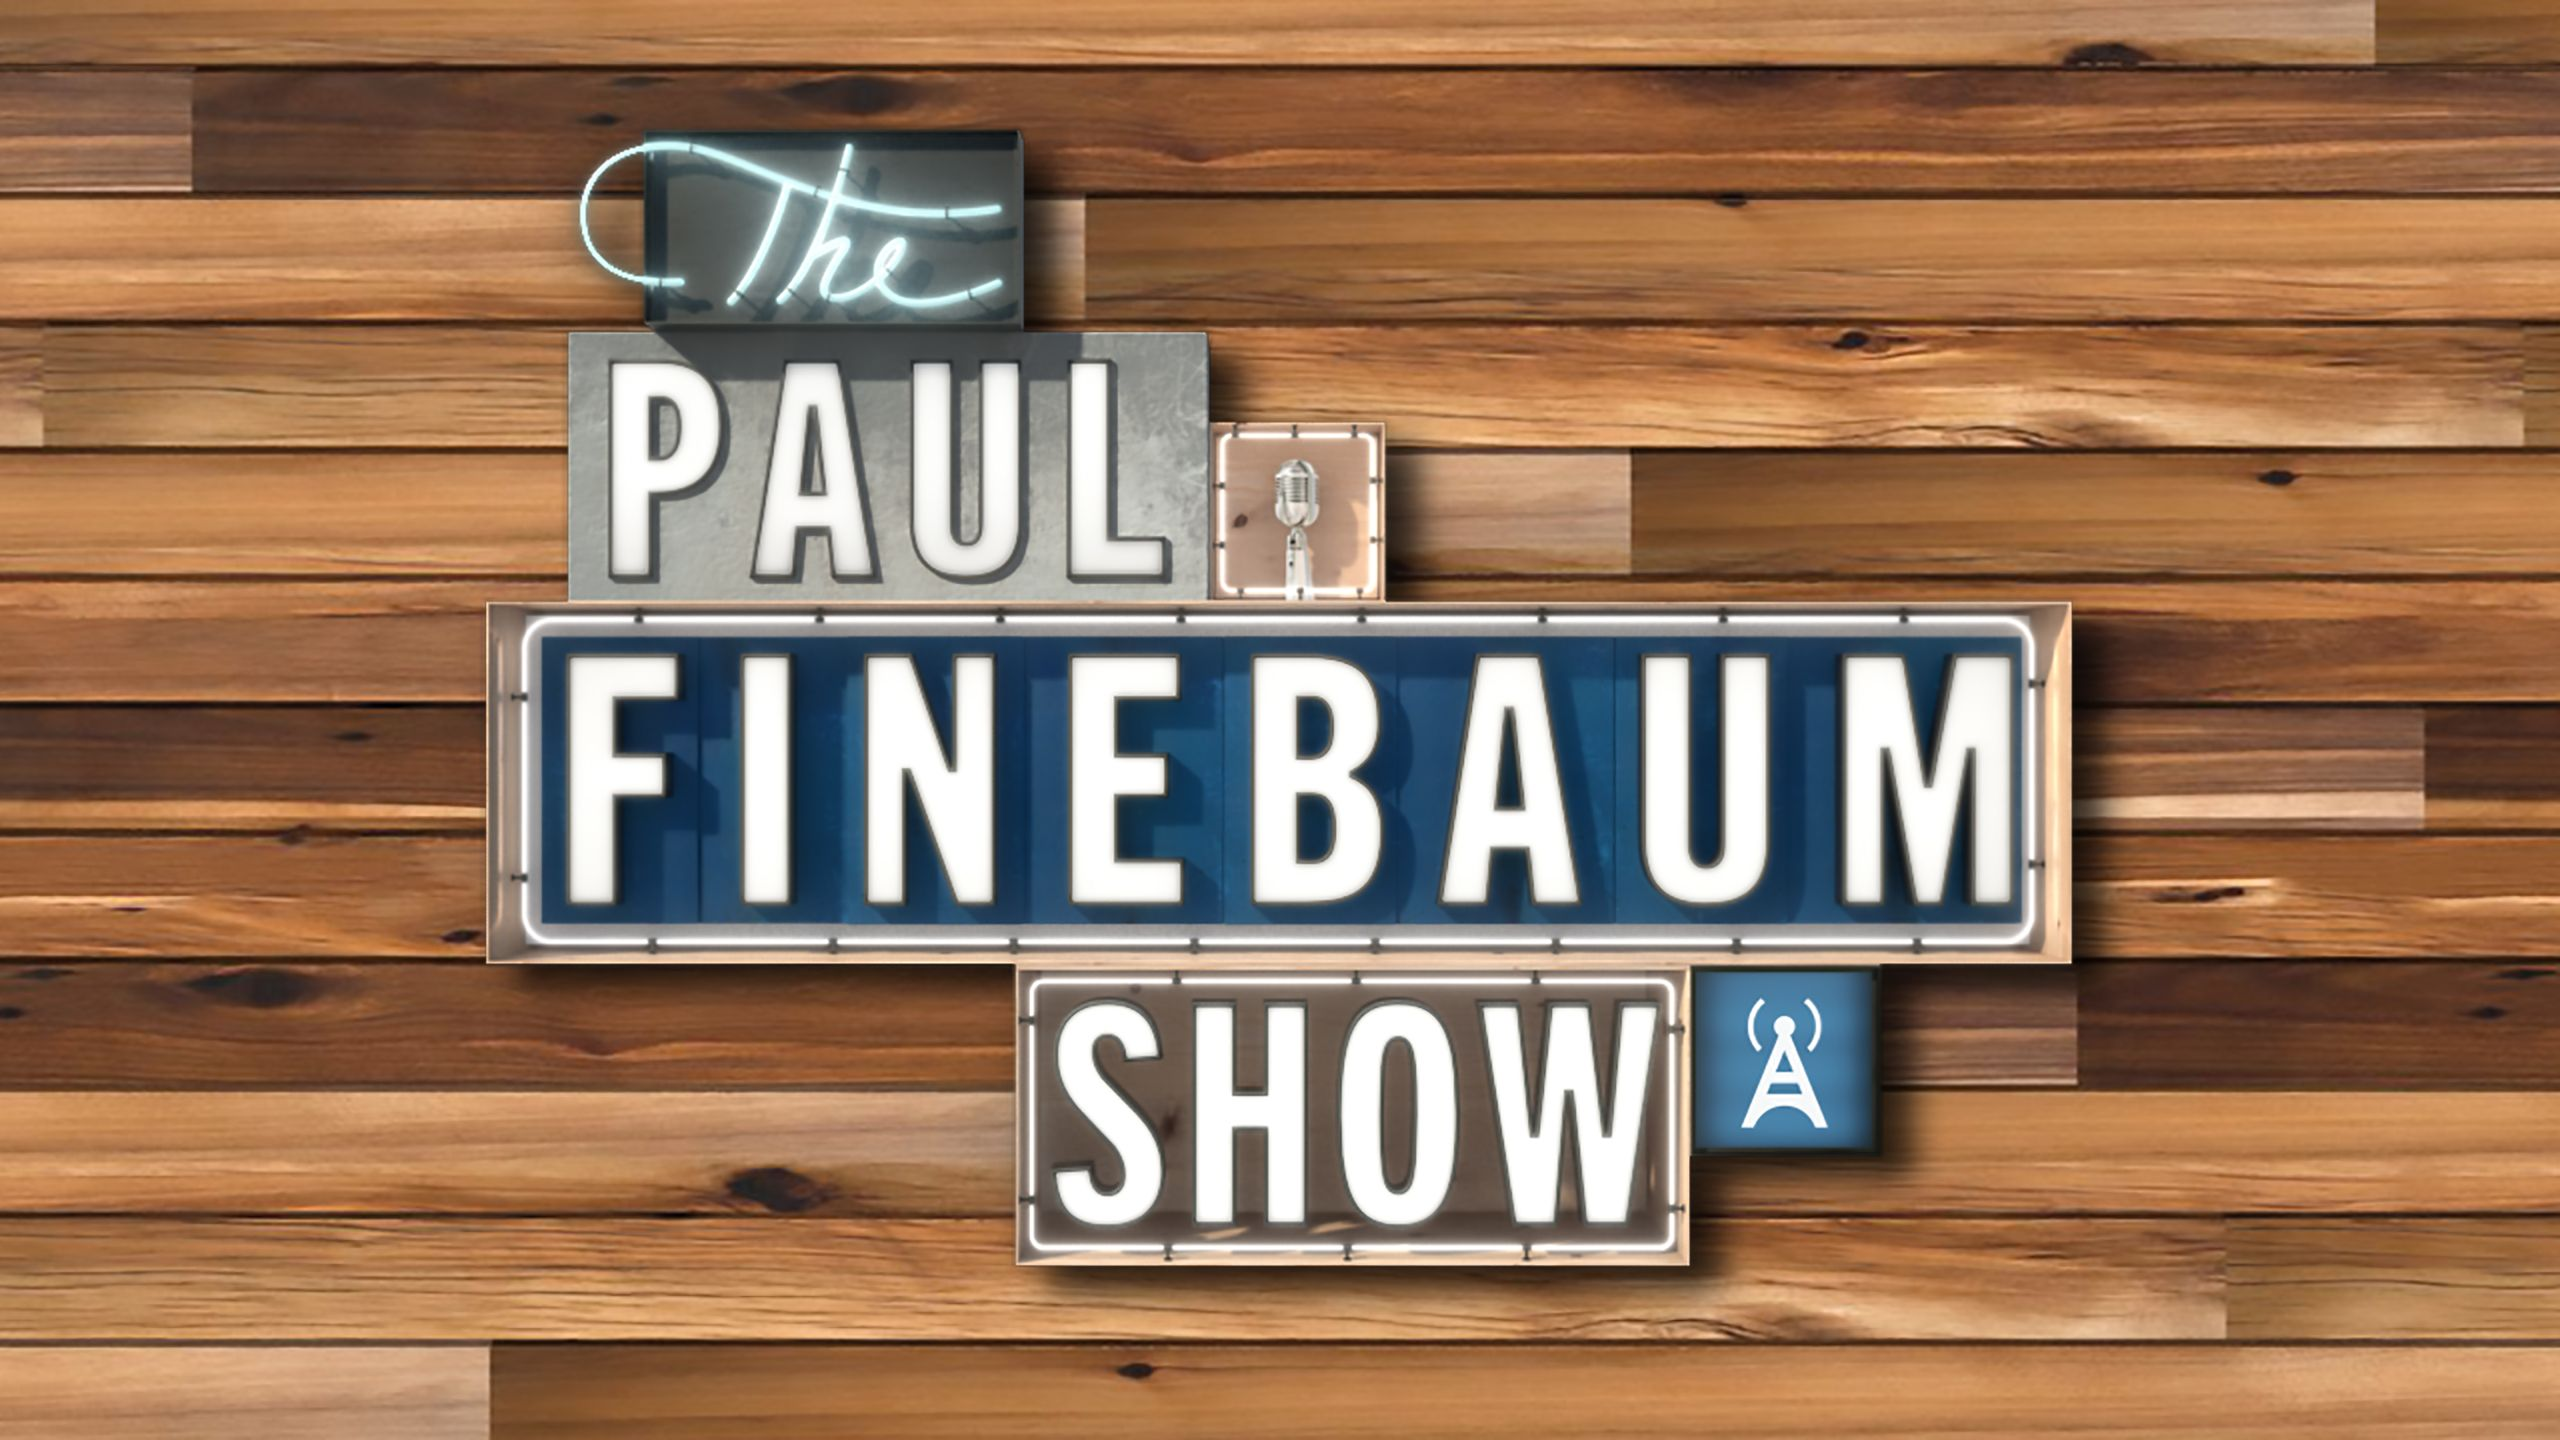 Fri, 3/23 - The Paul Finebaum Show